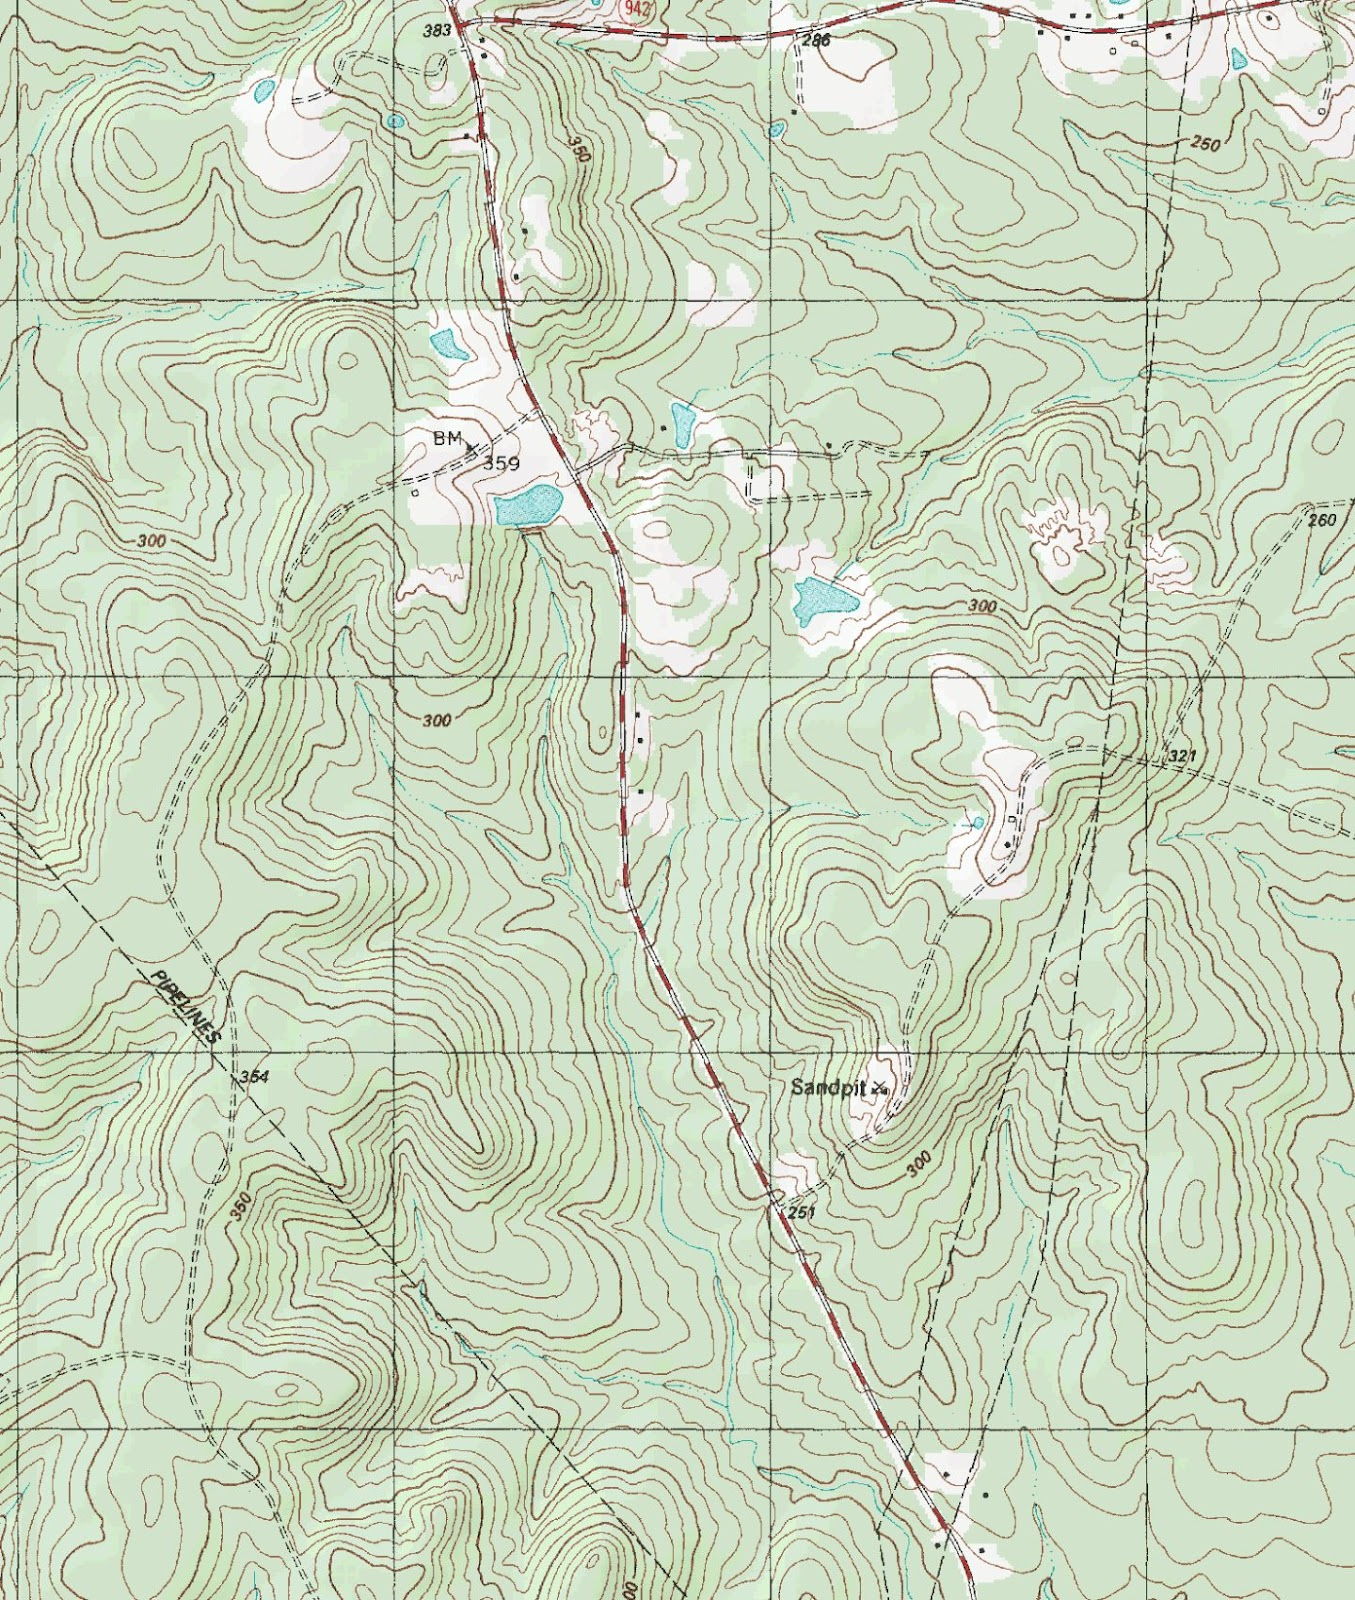 The Barefoot Peckerwood: Free Printable Topo Maps - Printable Topo Maps